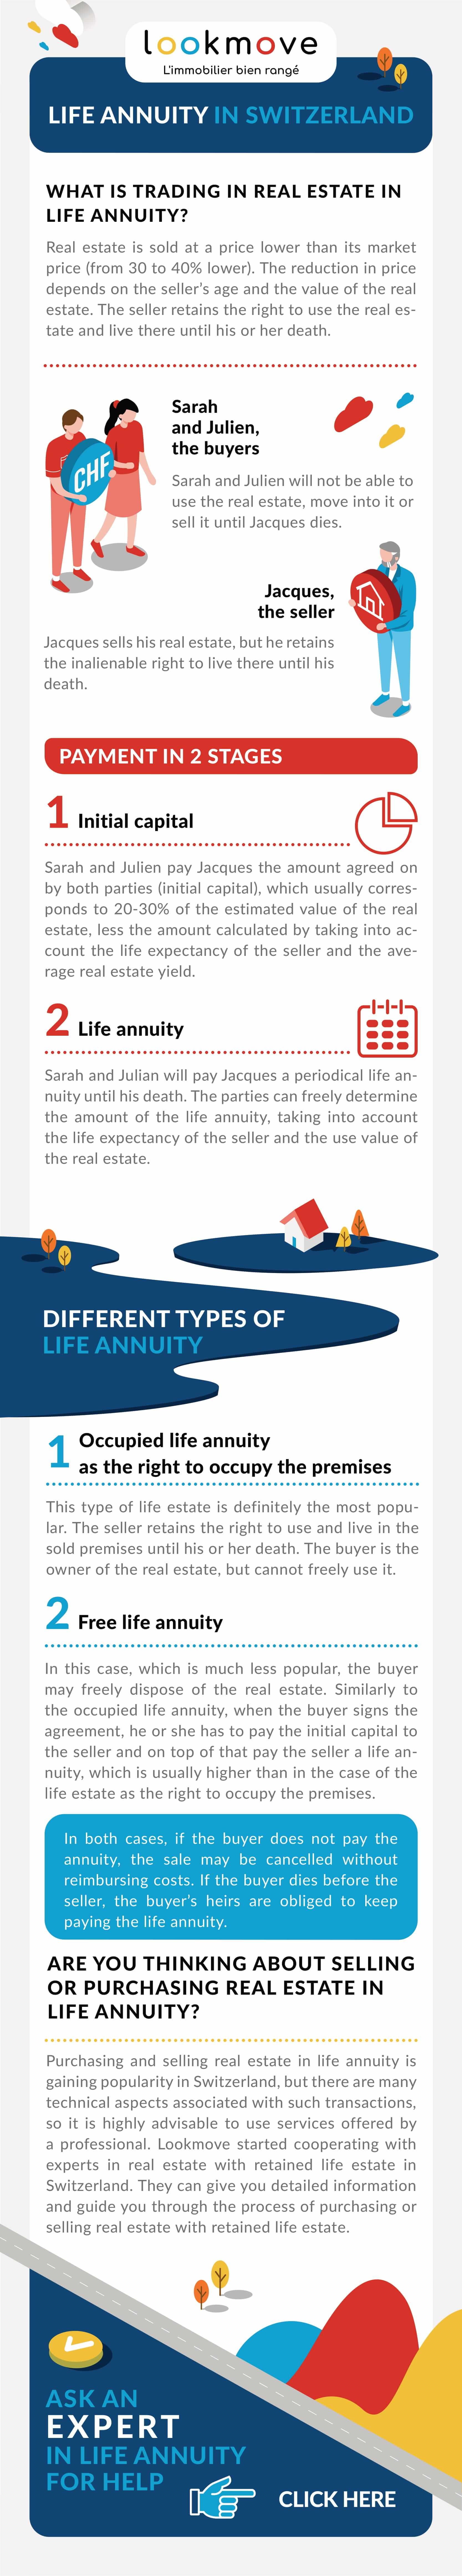 What is life annuity Lookmove